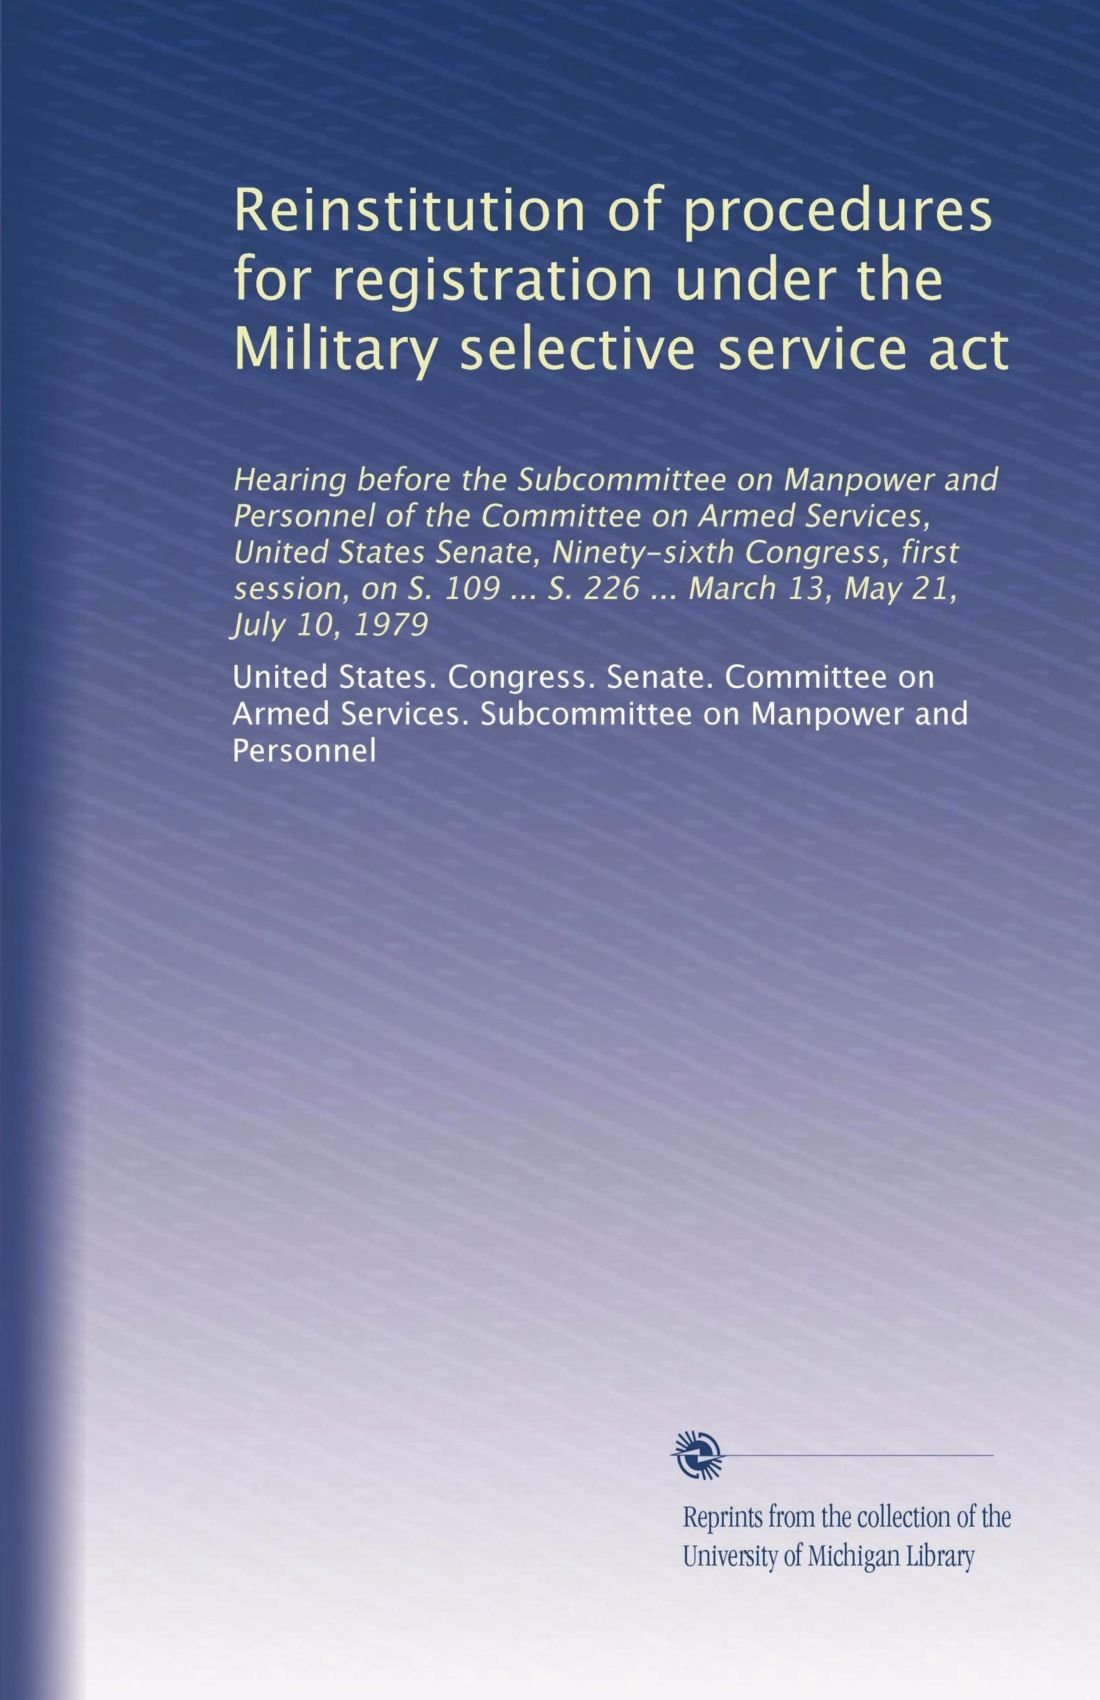 Reinstitution Of Procedures For Registration Under The Military Selective Service Act United States Congress Senate Committee On Armed Services Subcommittee On Manpower And Personnel Amazon Com Books